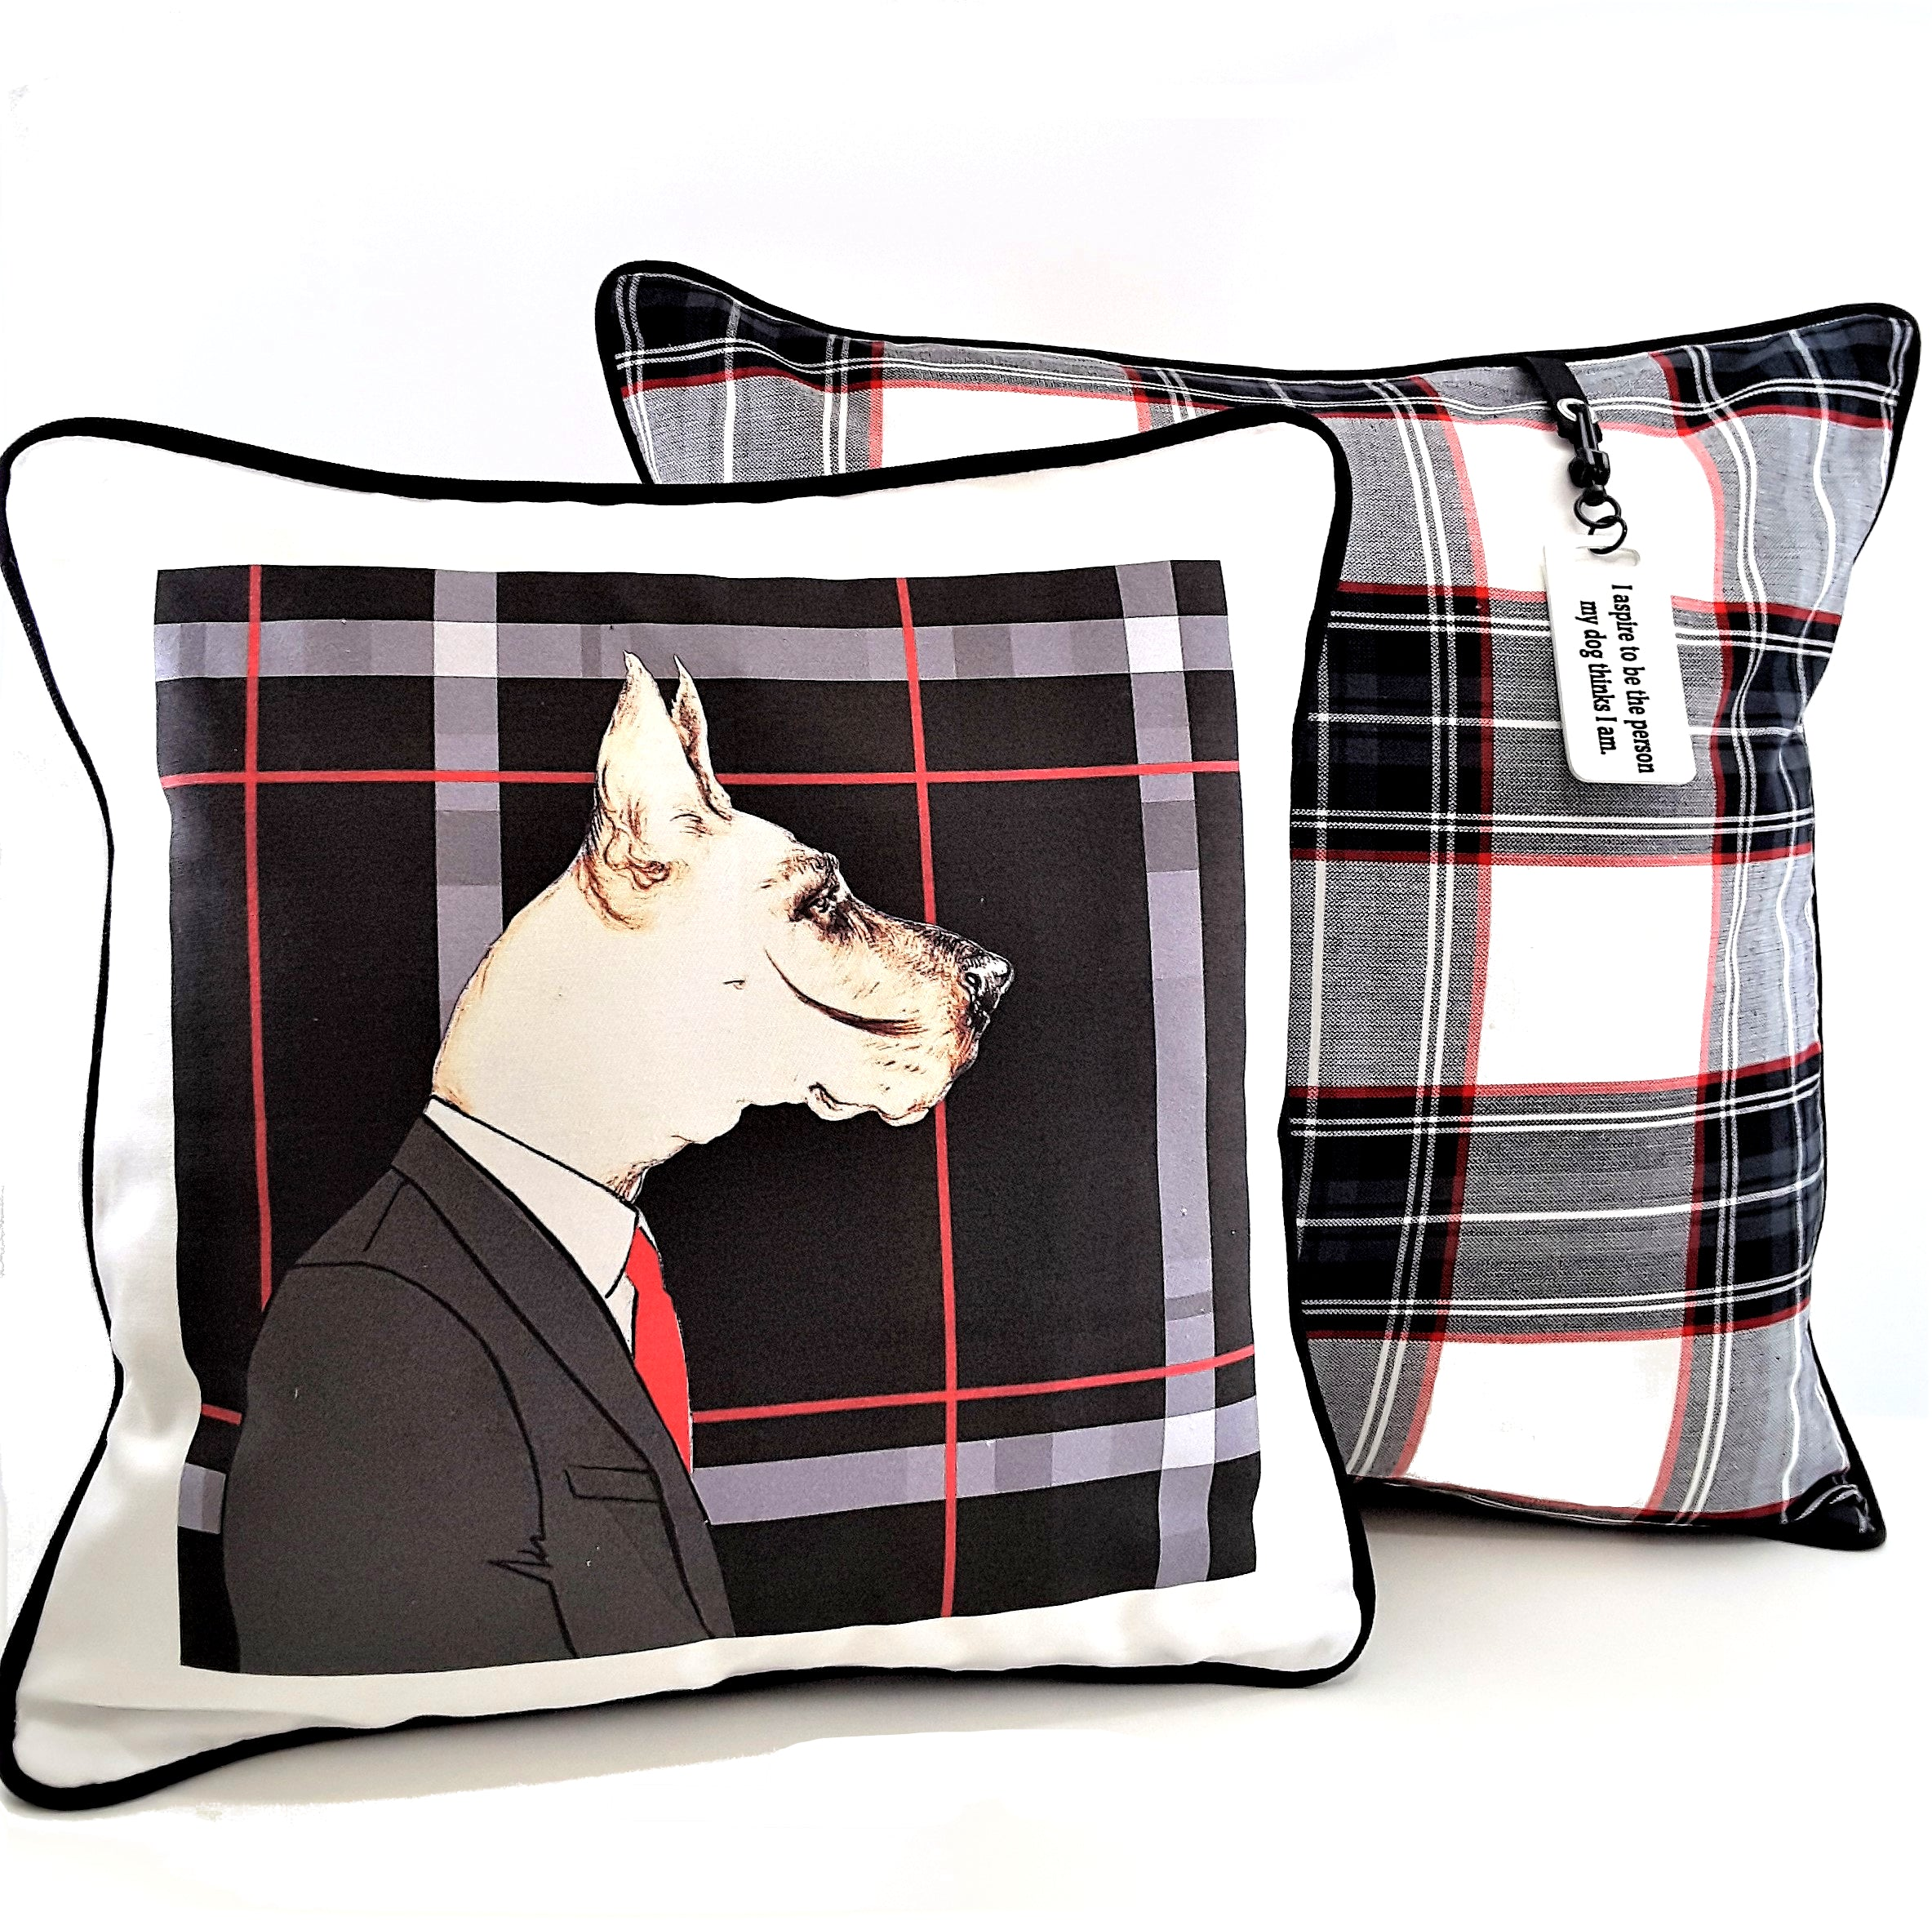 Mr. Dog Denim Pillow Cover - Free Shipping!